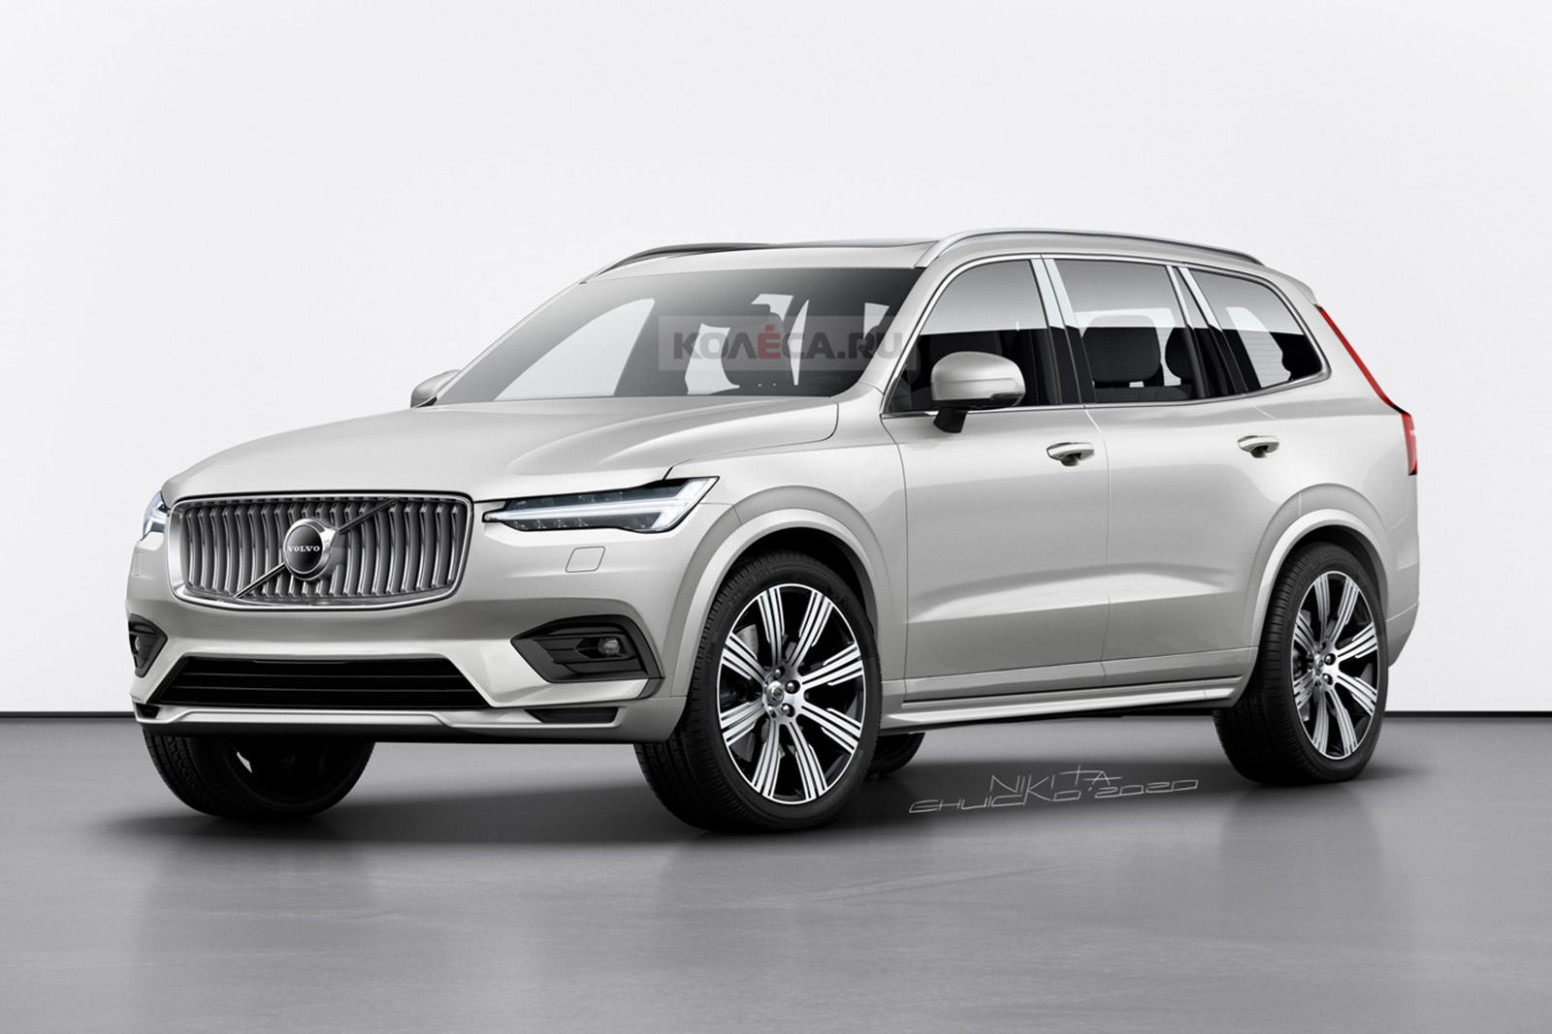 New Concept Volvo Xc90 2022 Youtube